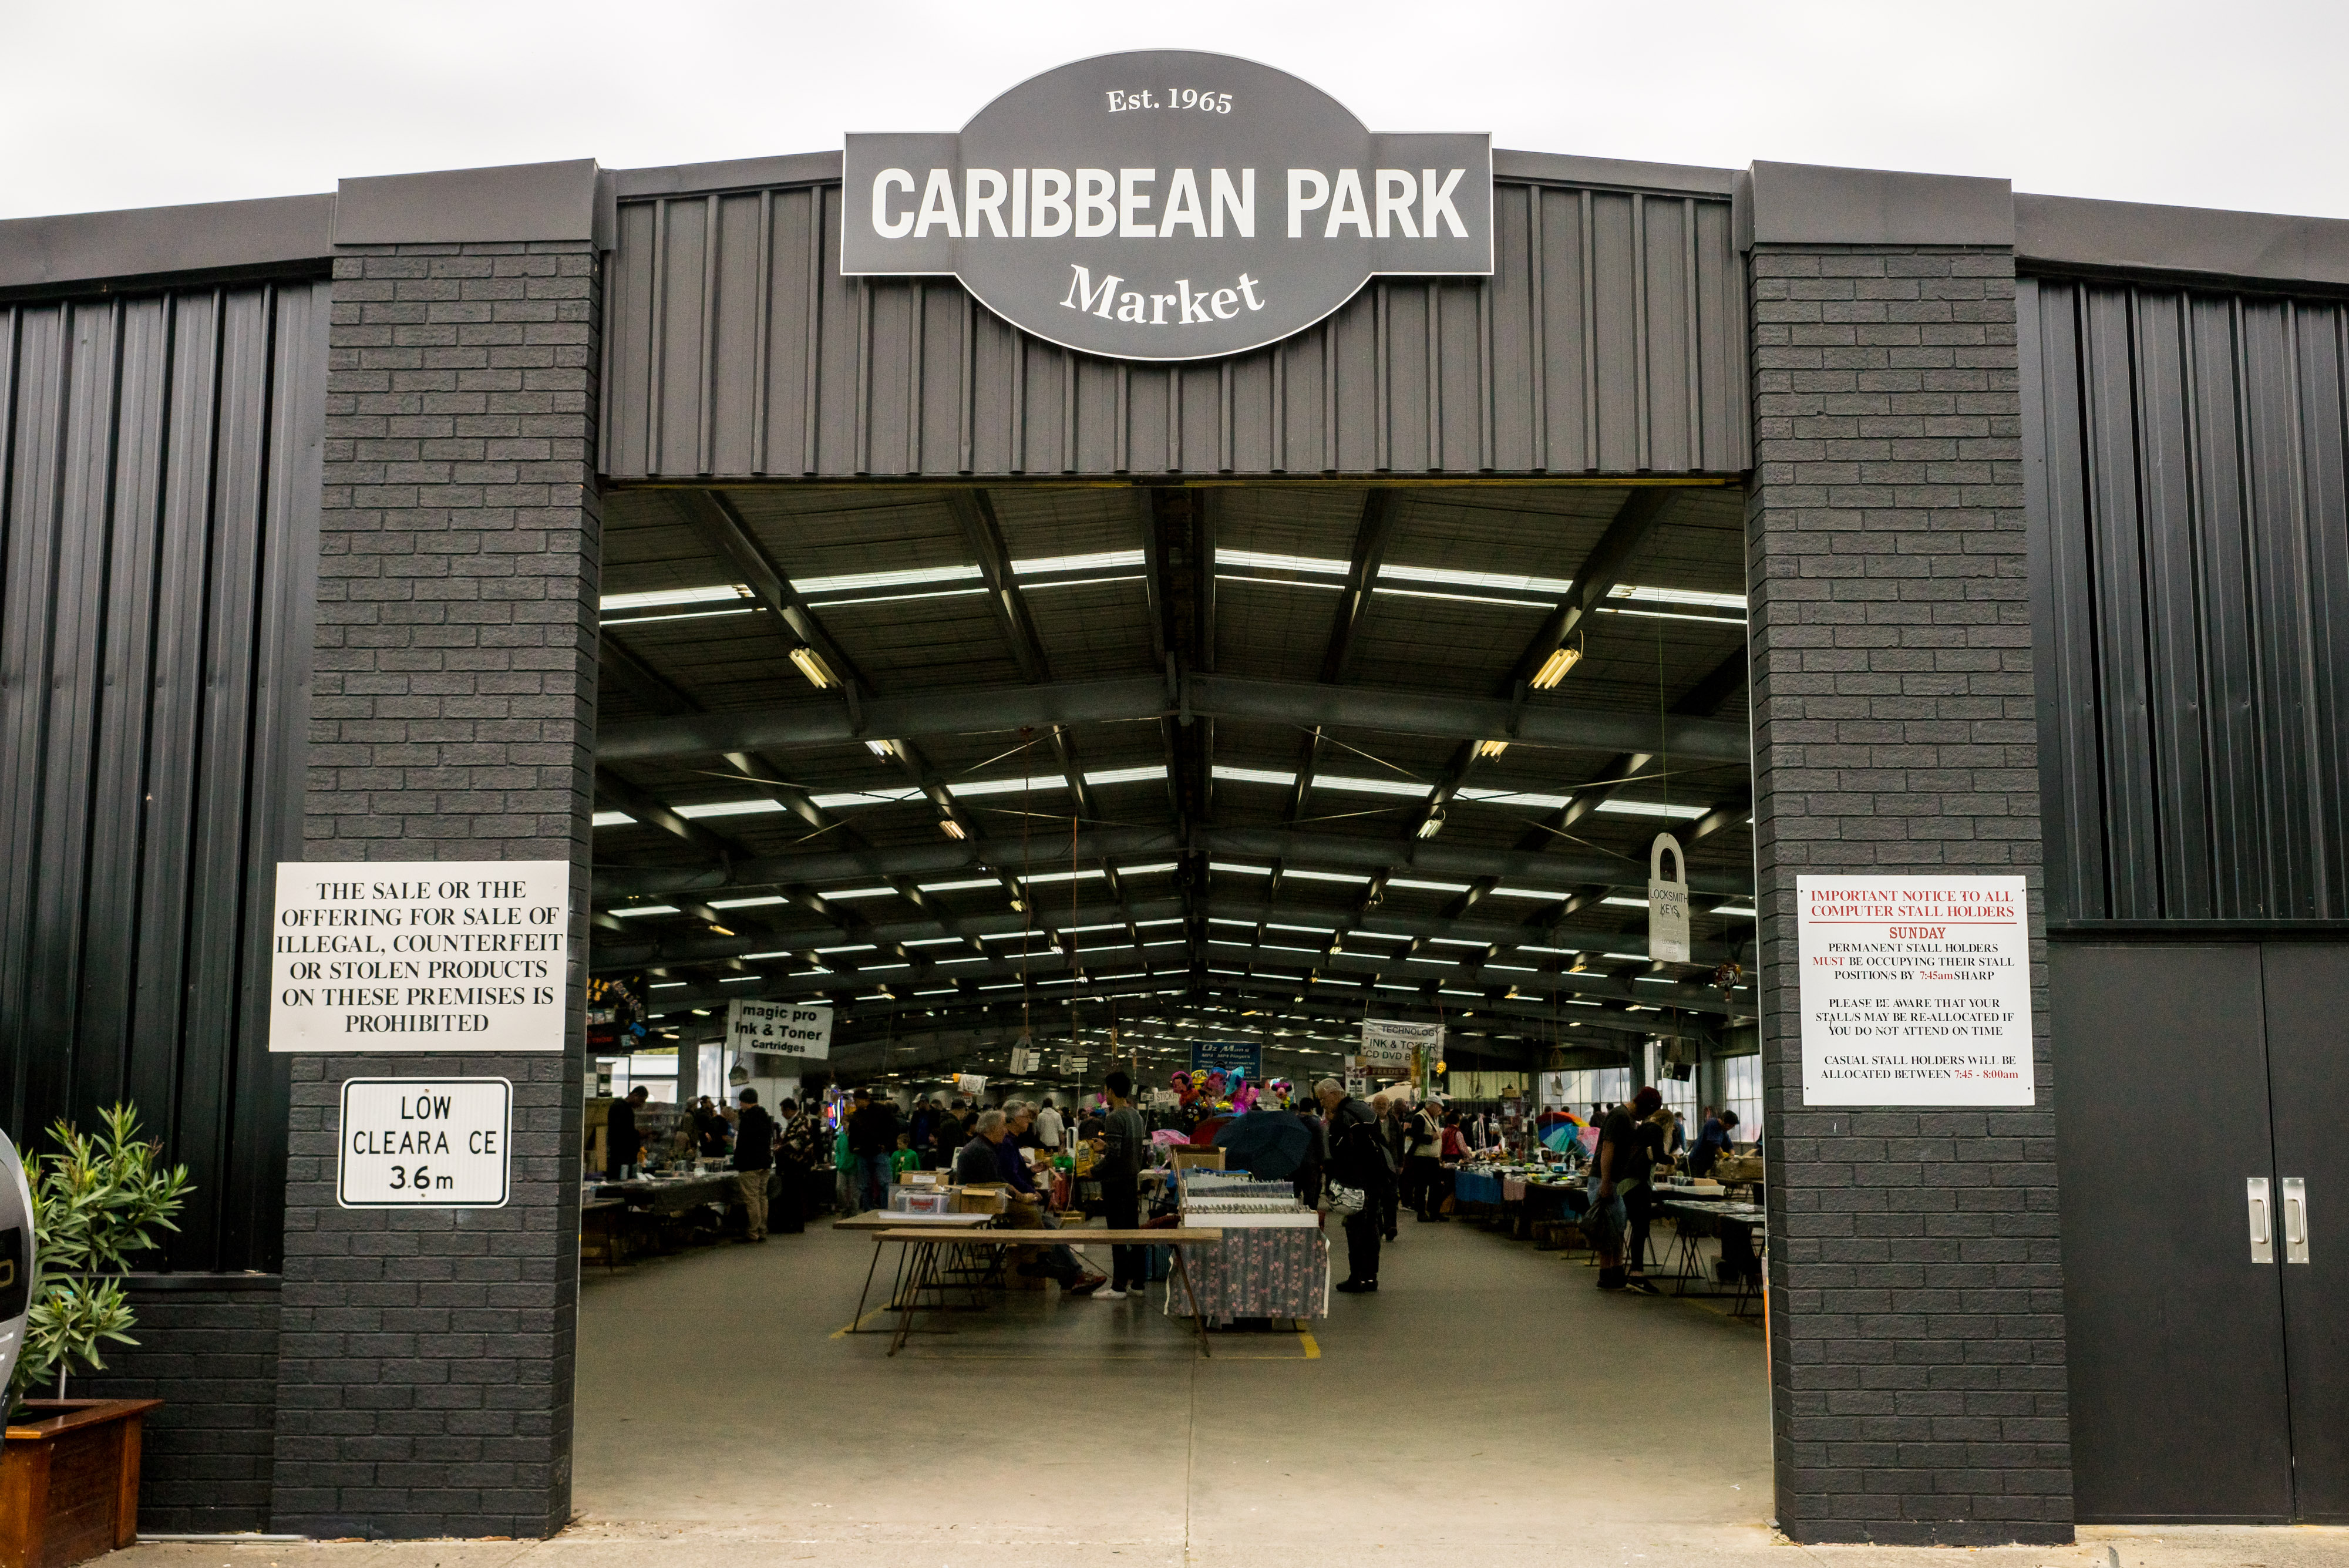 Caribbean Gardens and Market